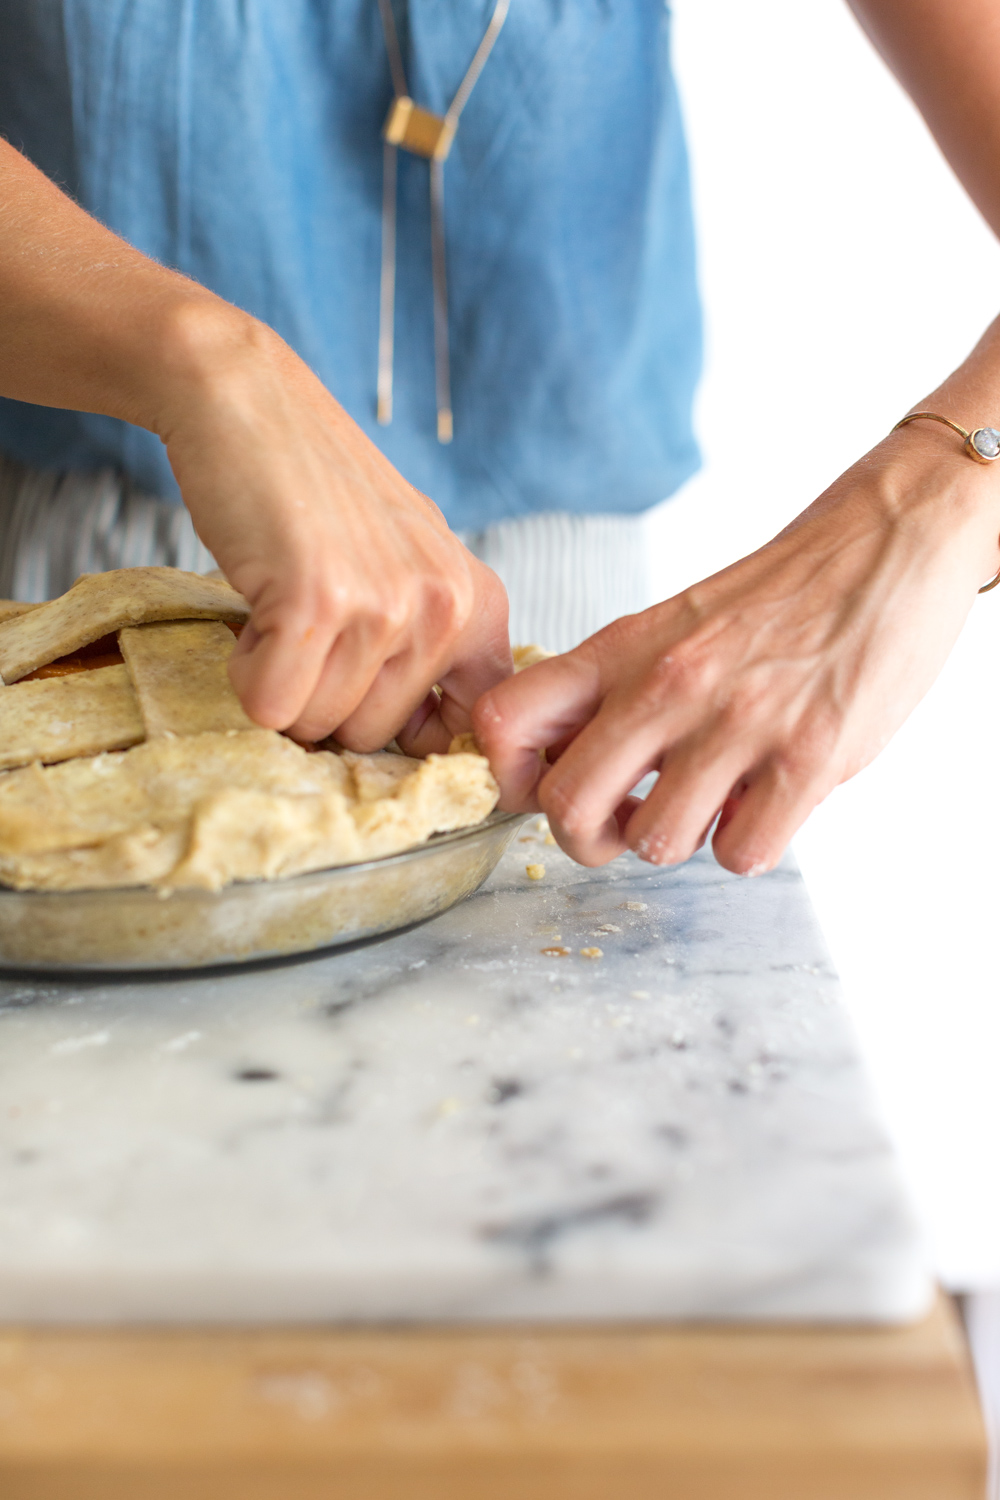 A baker shows how to flute the edge of a pie crust.